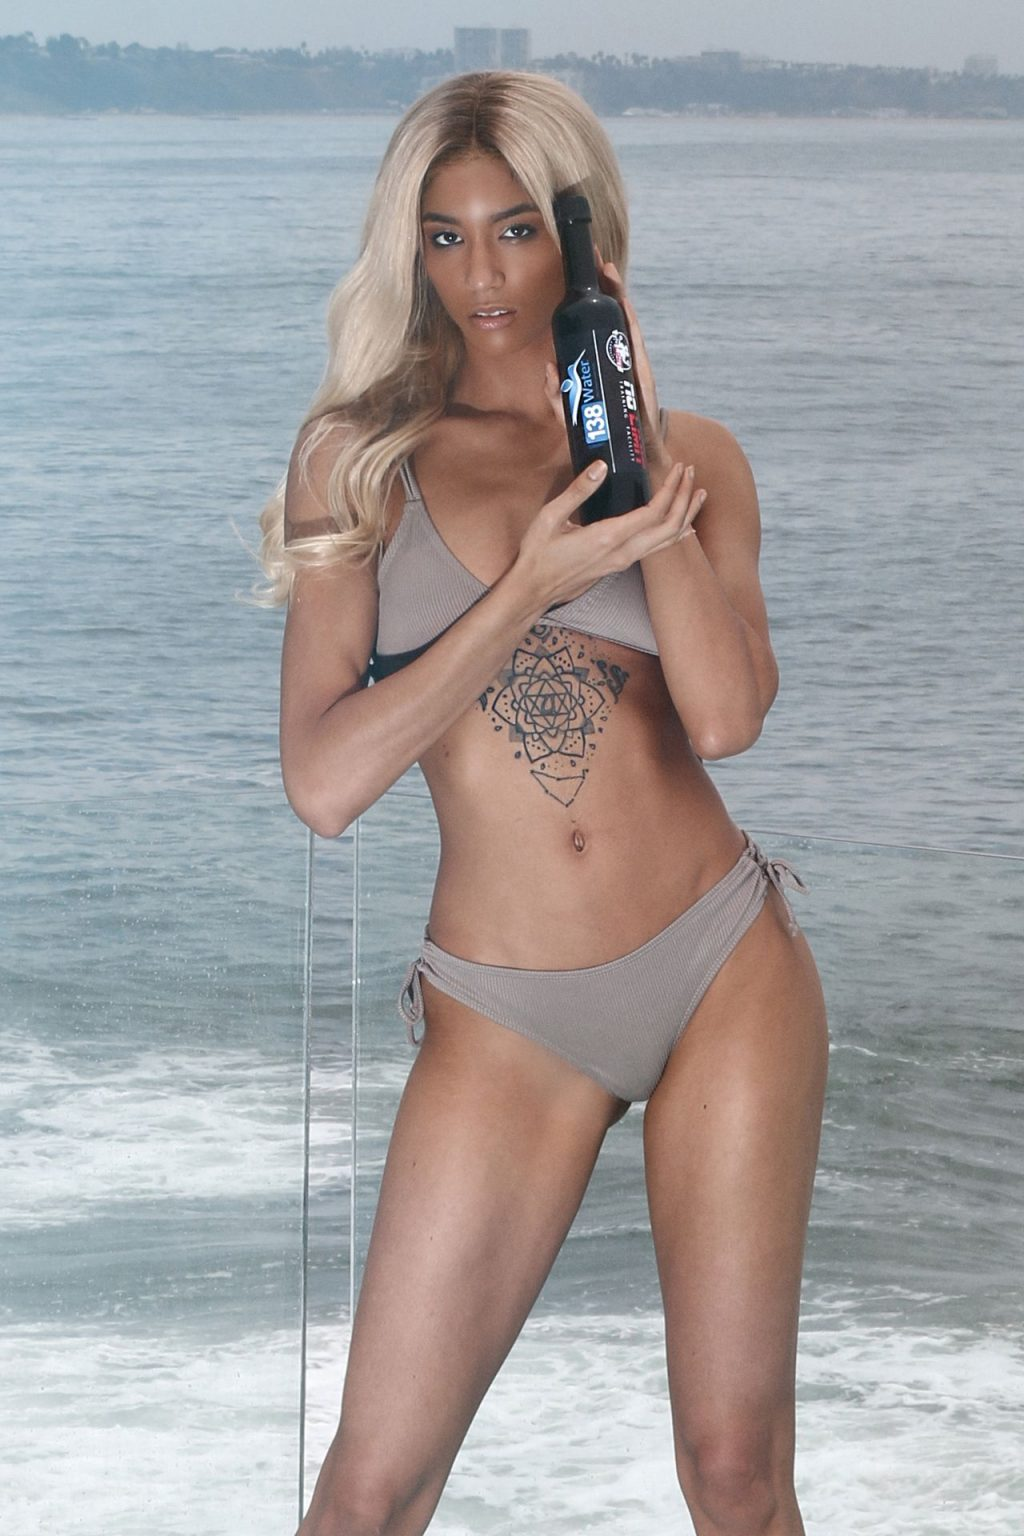 Briana Marie Shoots a New Campaign for the 138 Water CBD in Malibu (28 Photos)